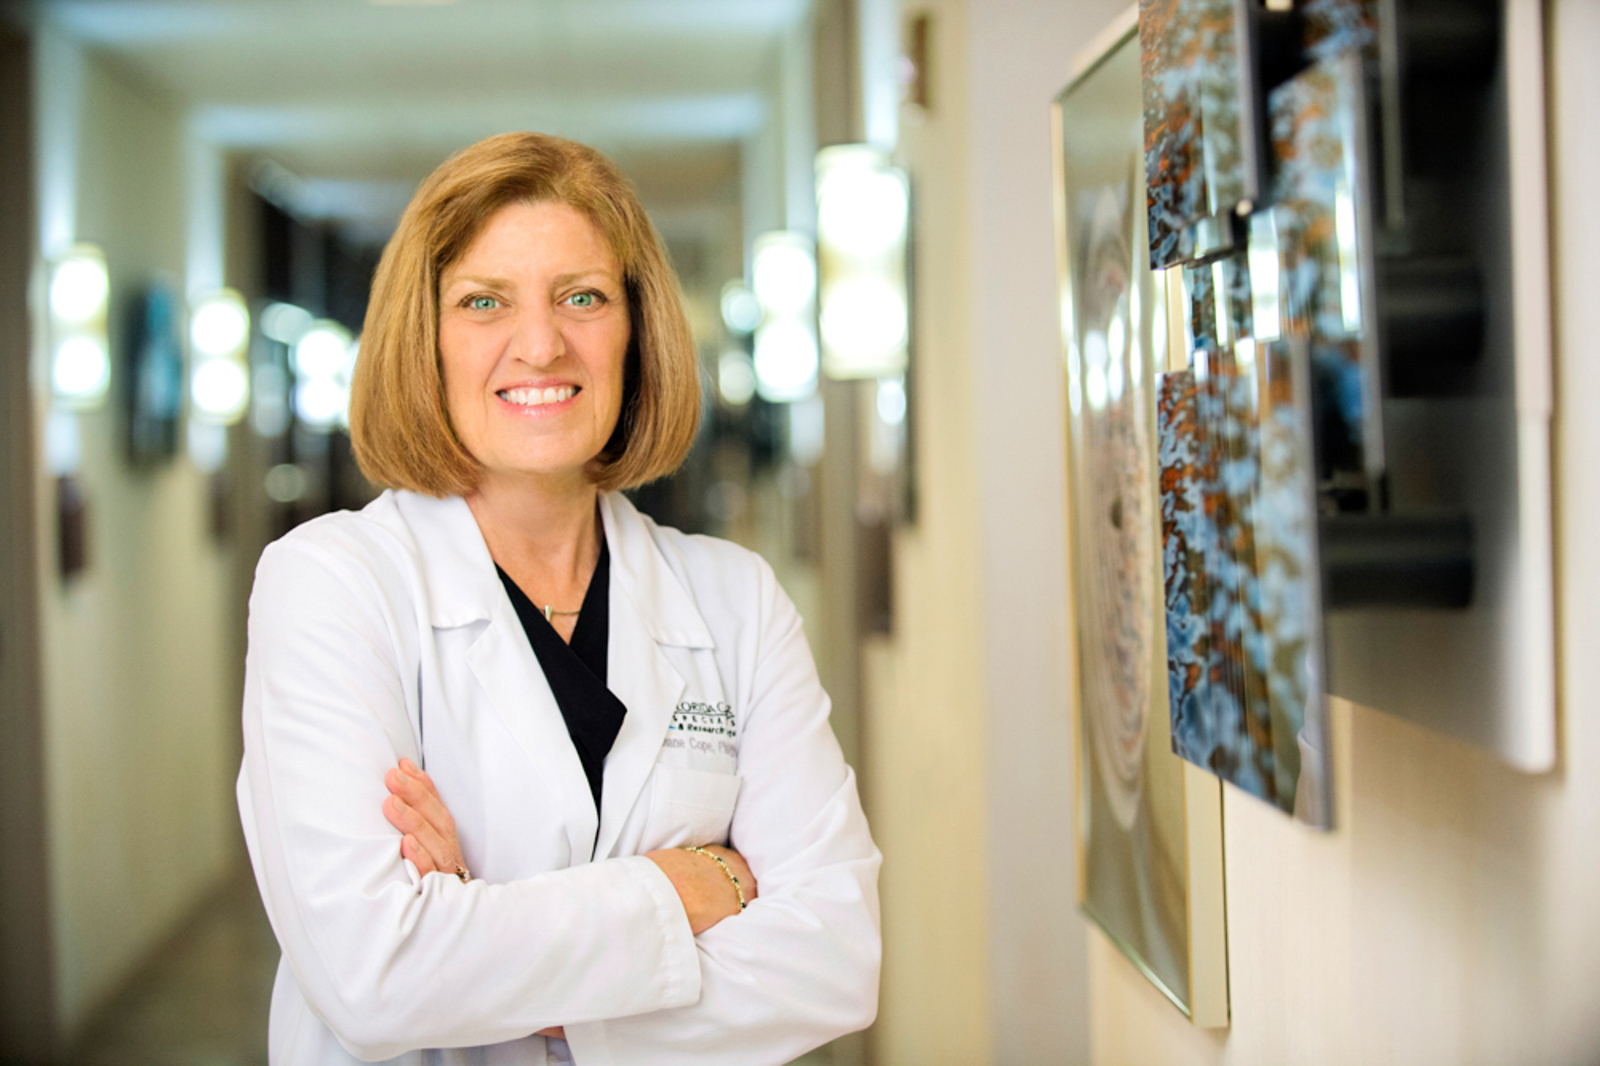 Portrait of health professional with her armed crossed, smiling in hallway